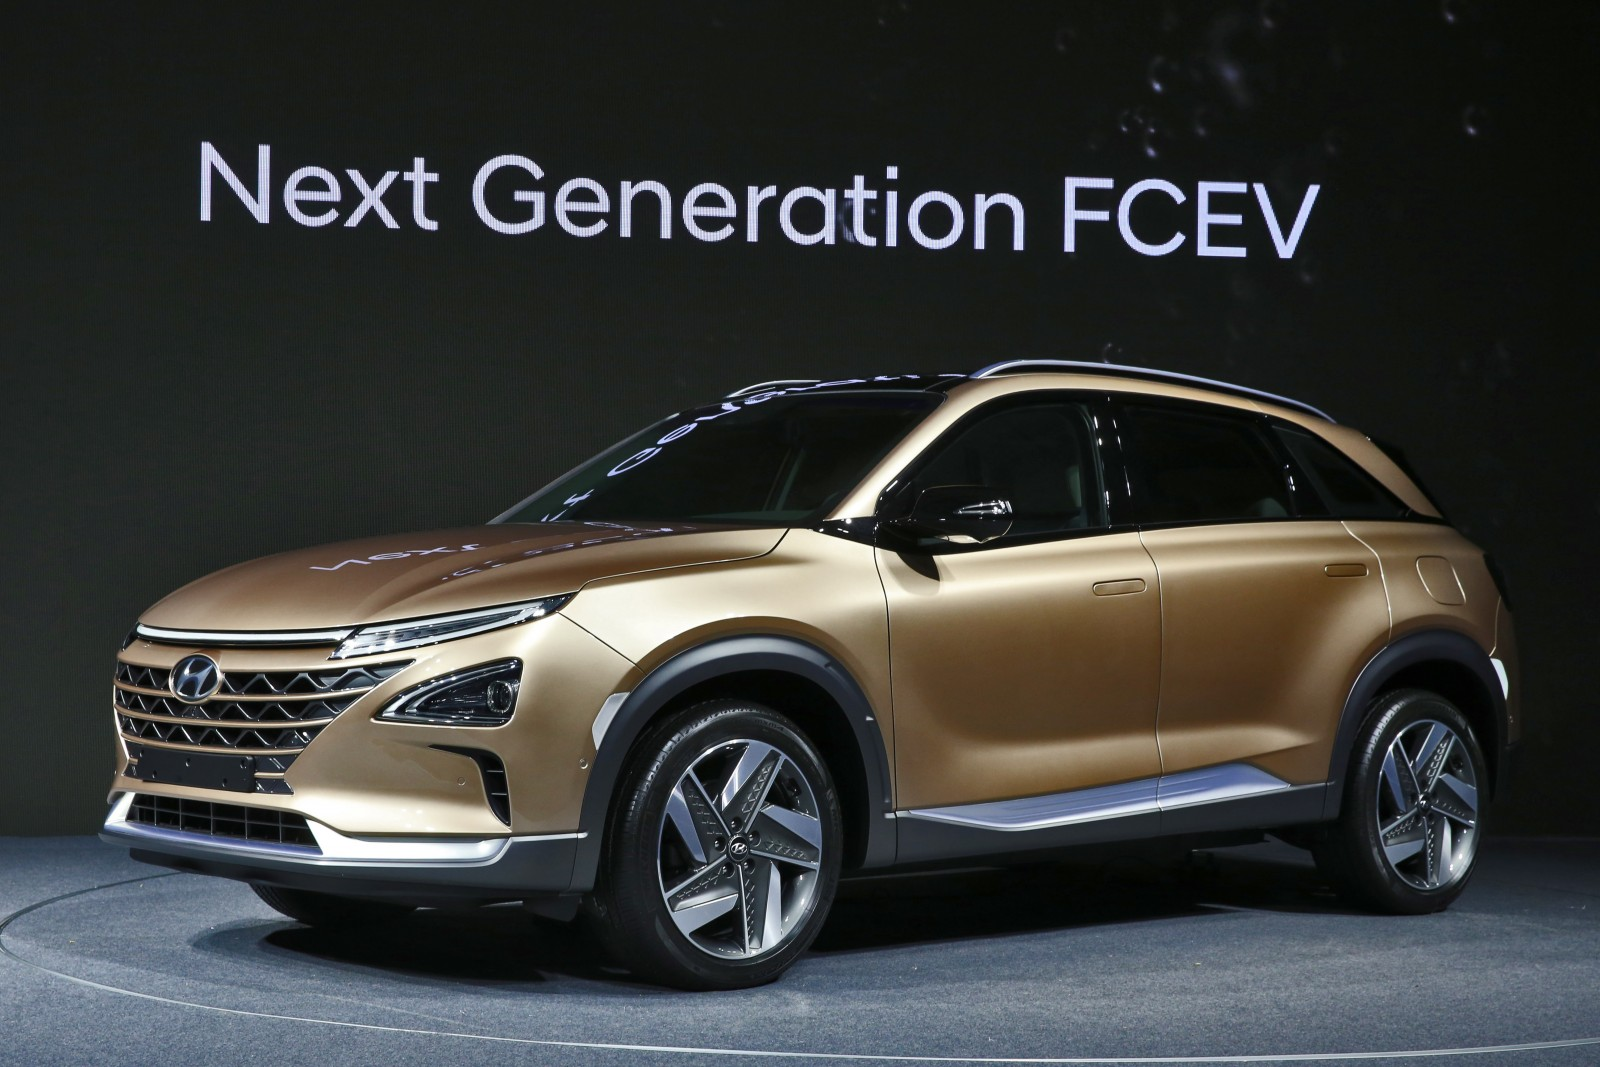 Hyundai next-gen fuel cell vehicle